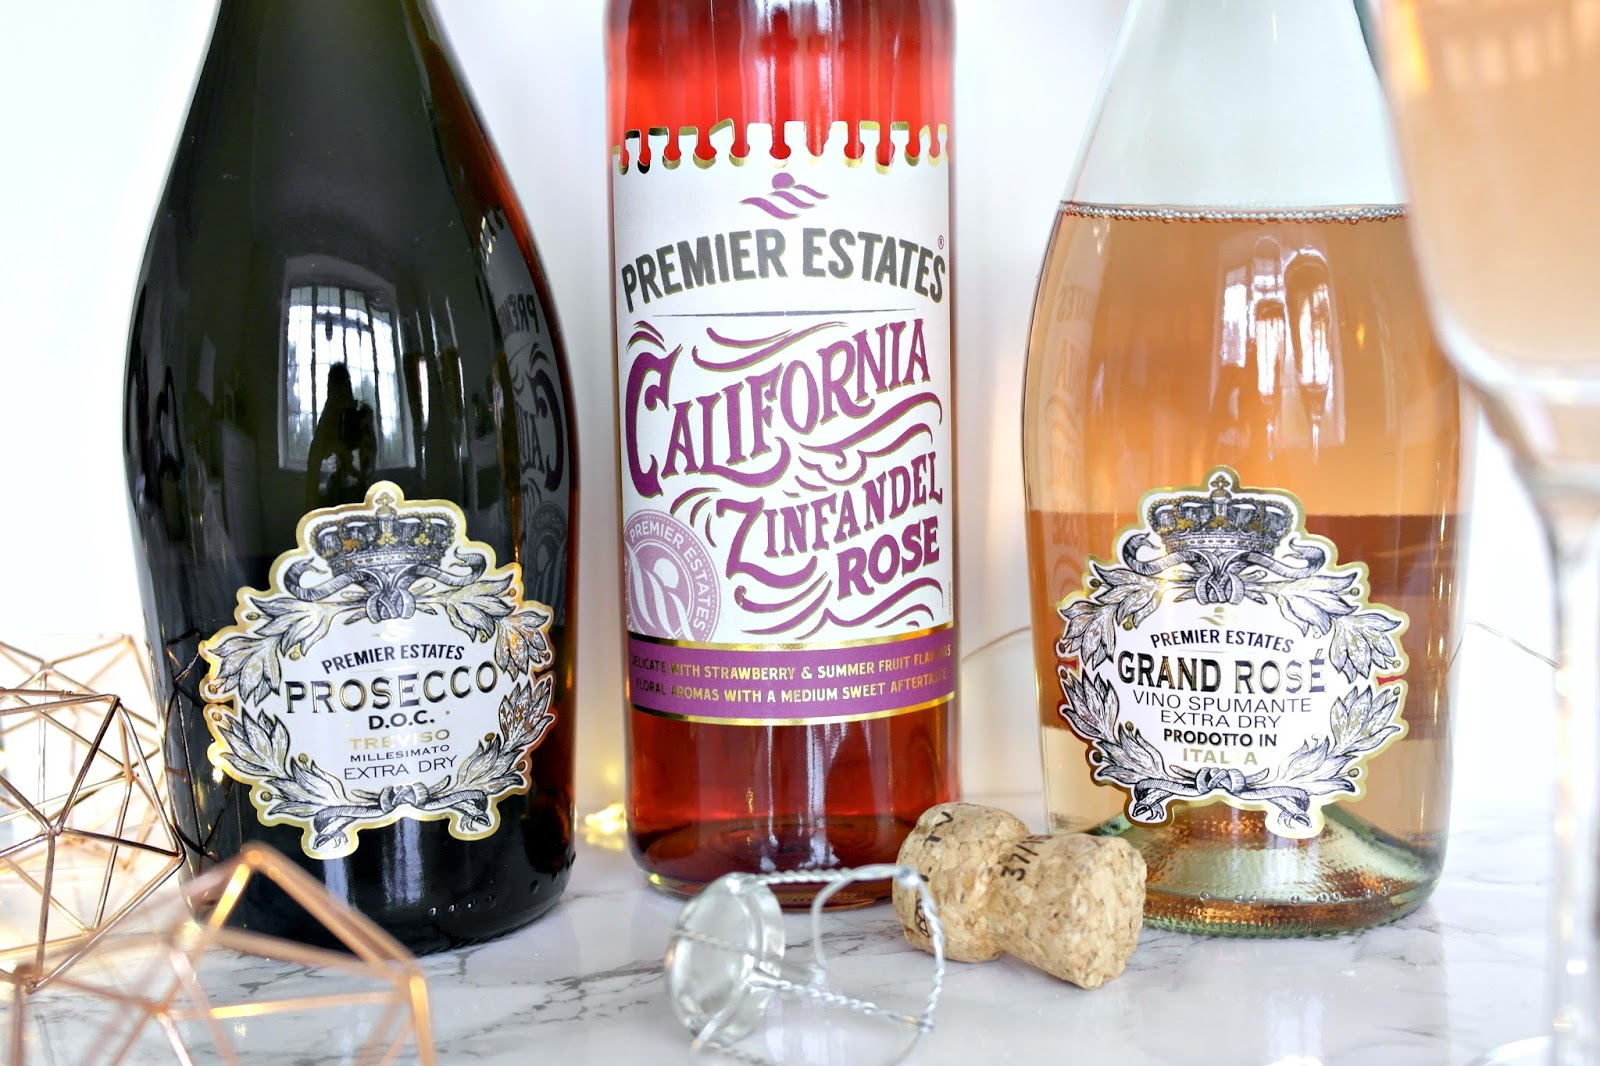 Premier Estates Grand Rose Sparkling Wine, prosecco, review